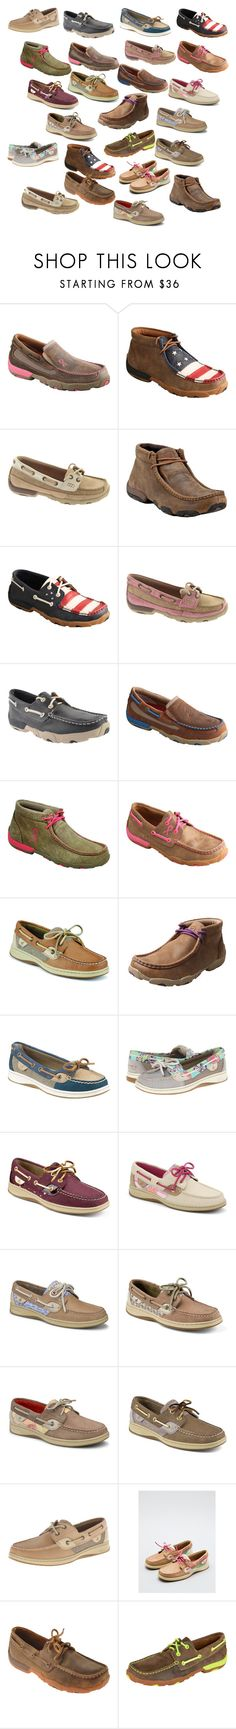 10 Twisted x shoes ideas   twisted x